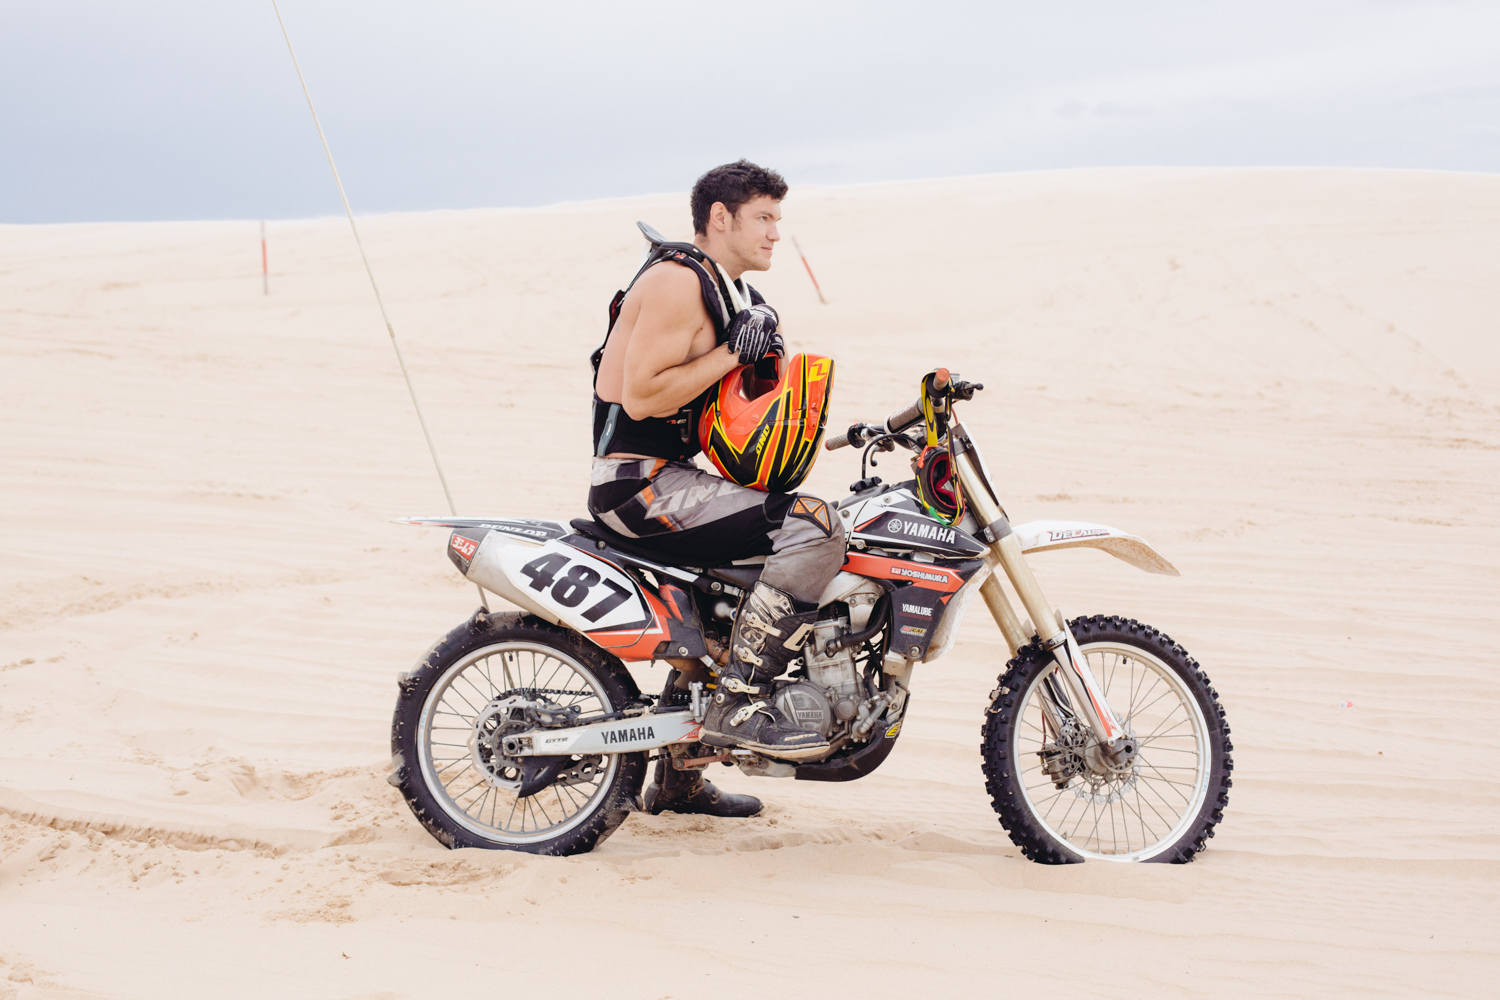 riding-a-dirt-bike-in-the-sand-dunes